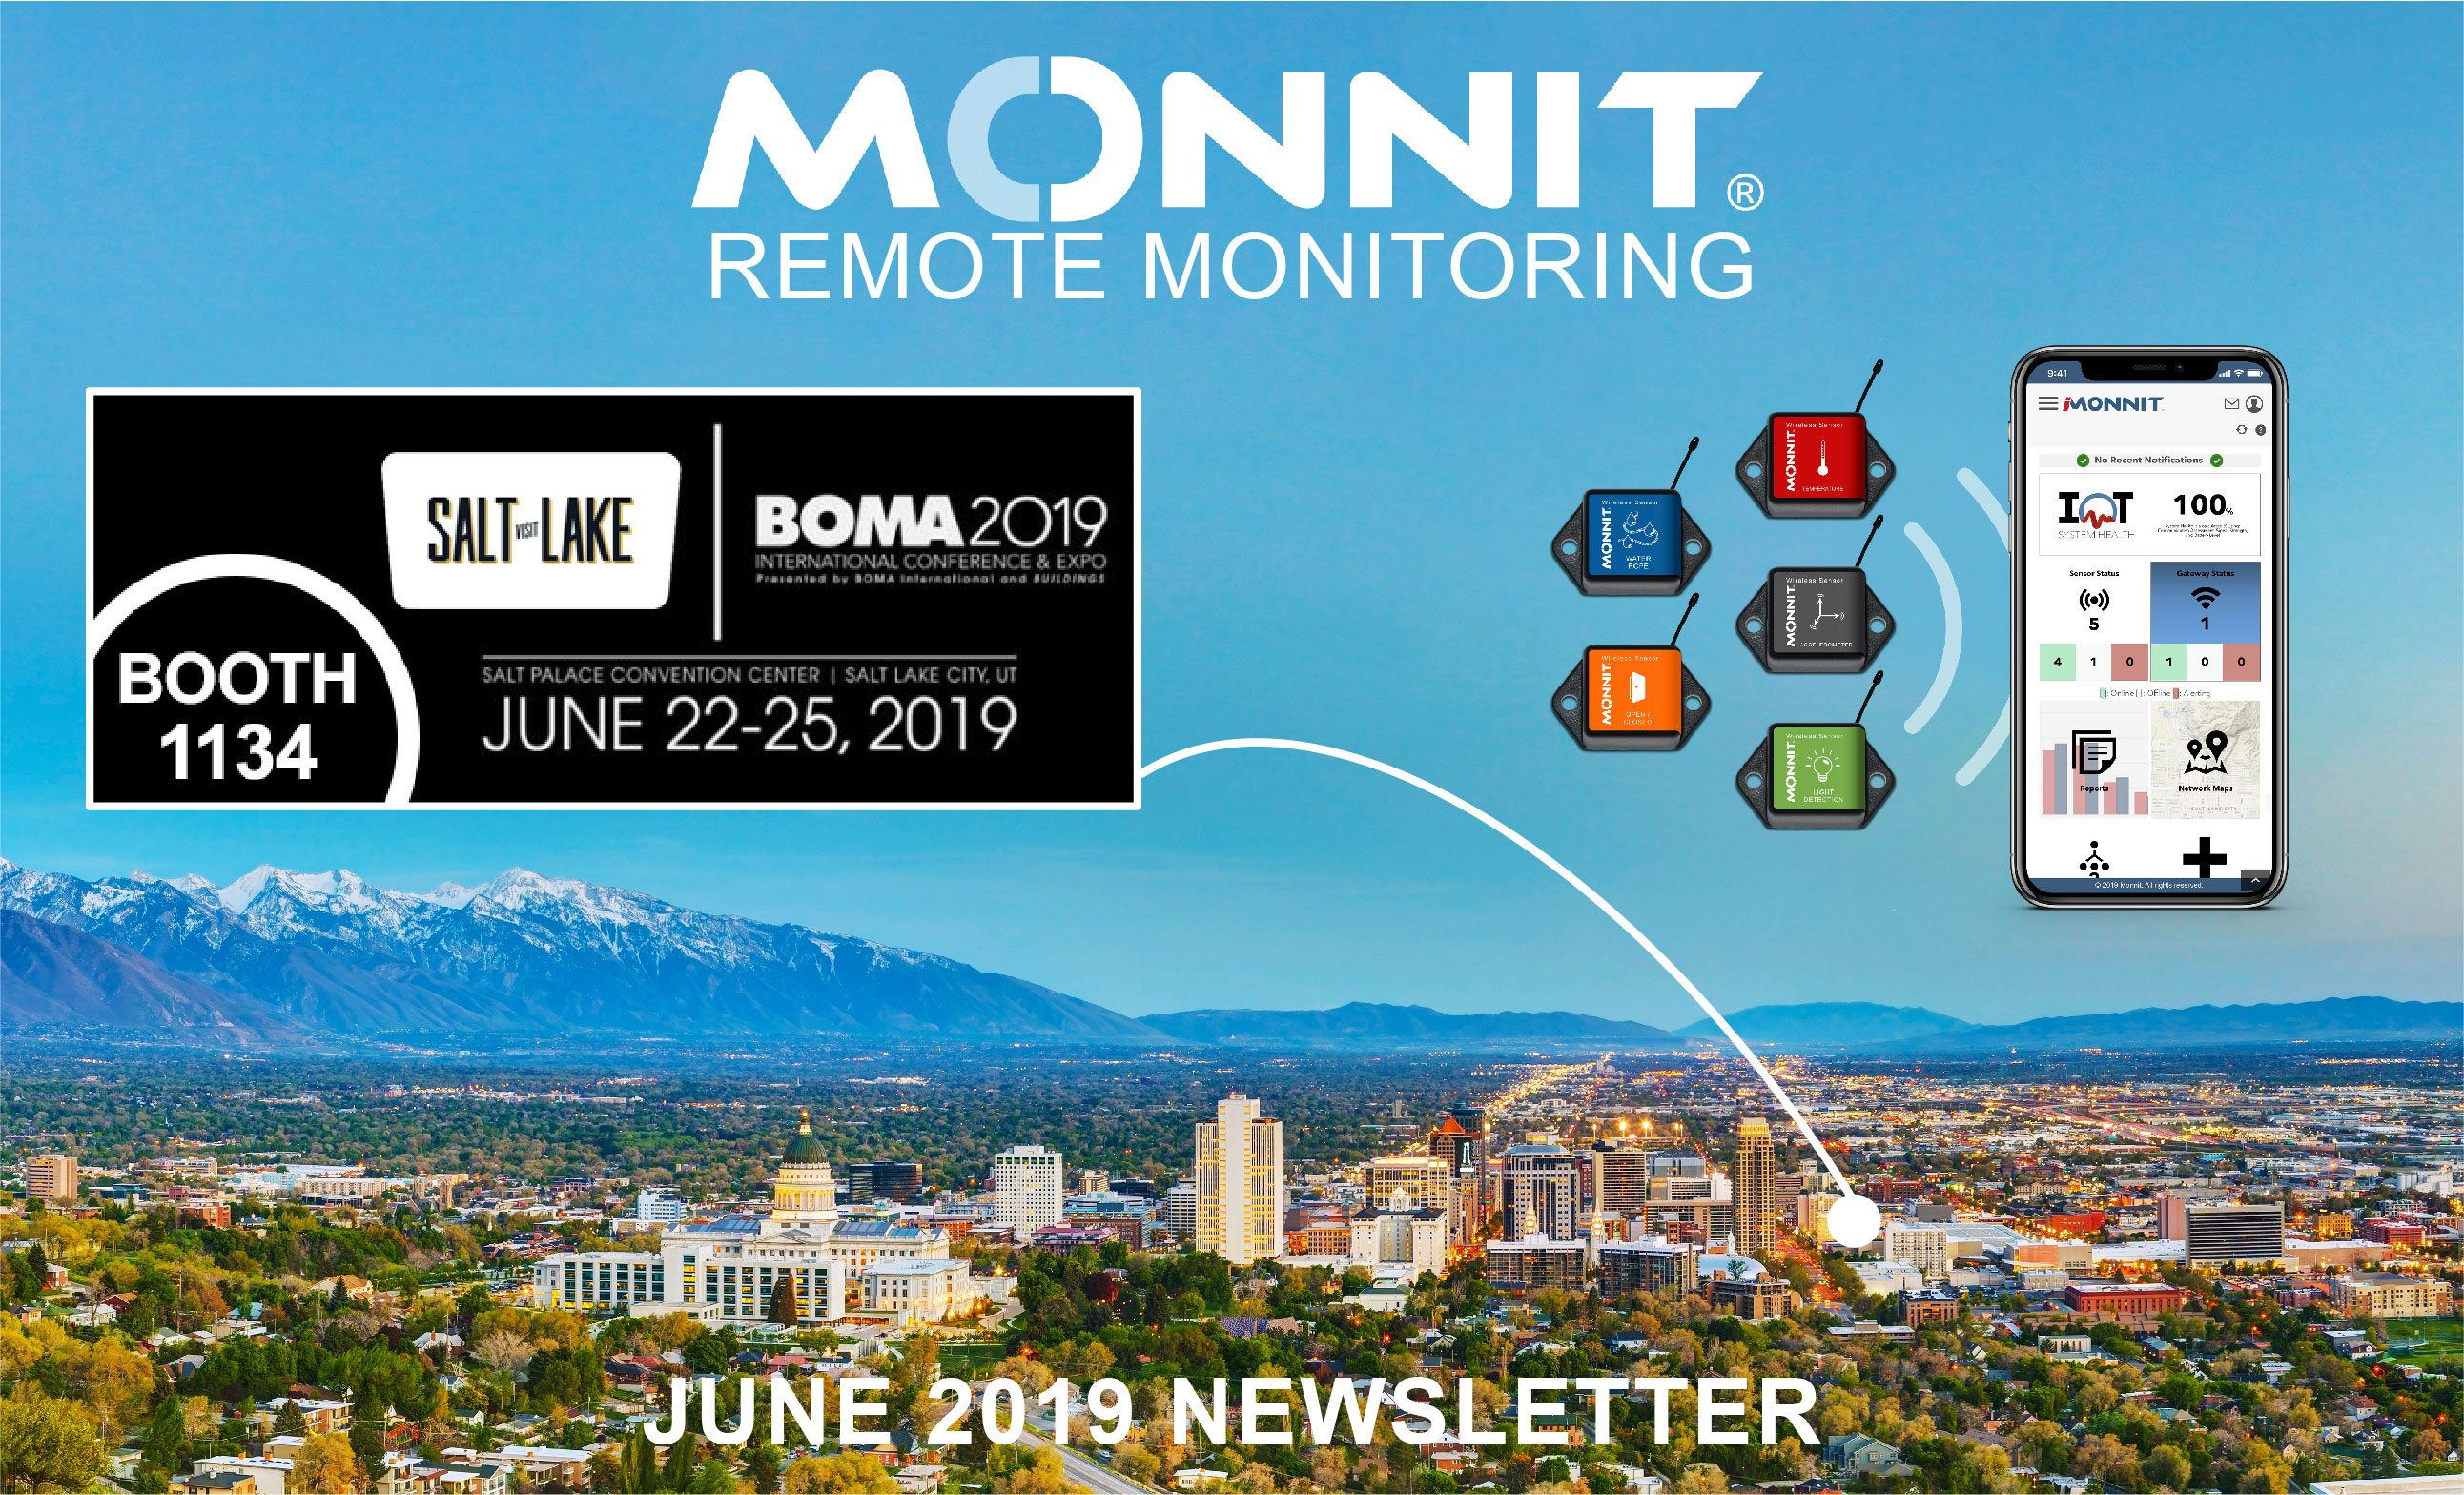 Monnit Monthly Newsletter - June 2019